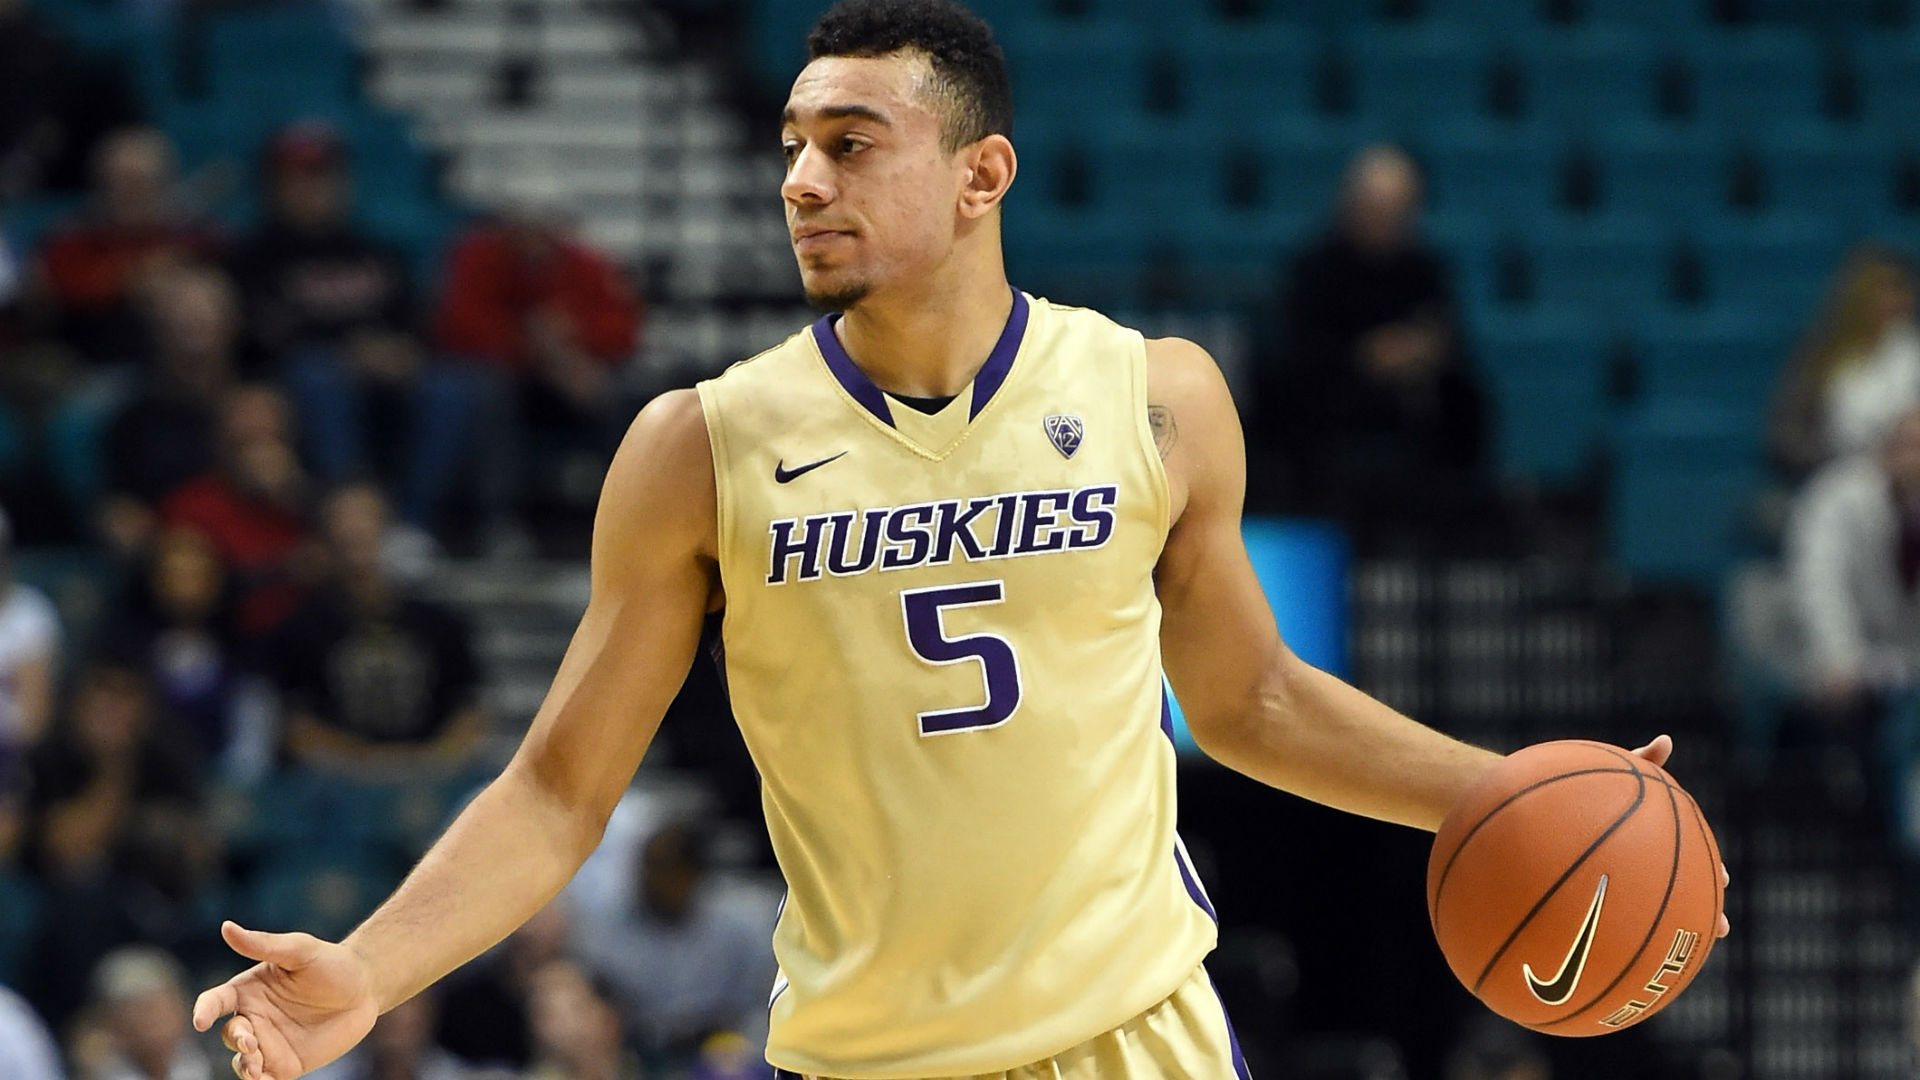 Washington transfer Nigel Williams-Goss commits to Gonzaga